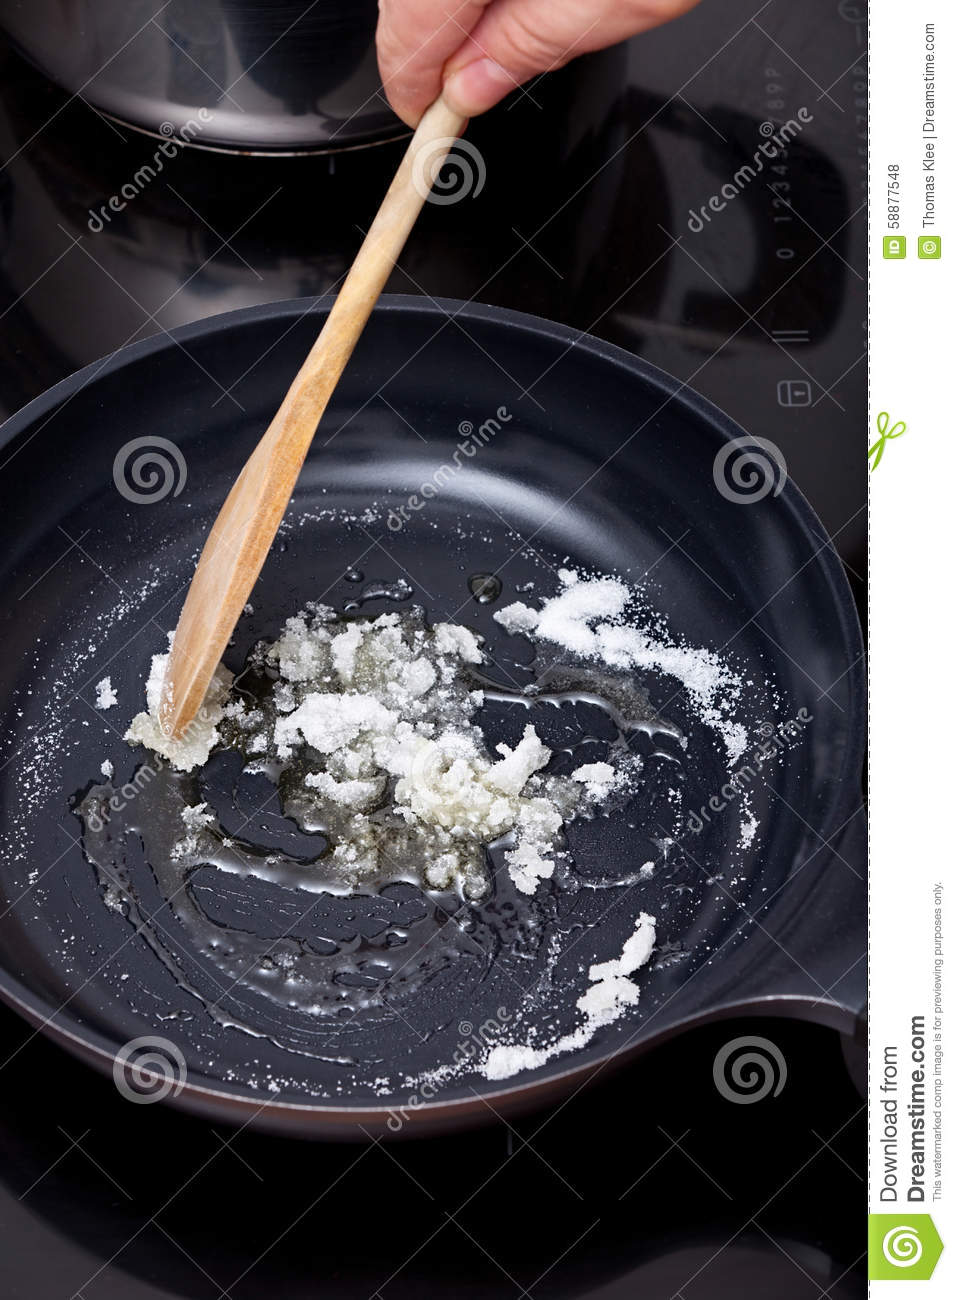 Sugar stir up with wooden spoon